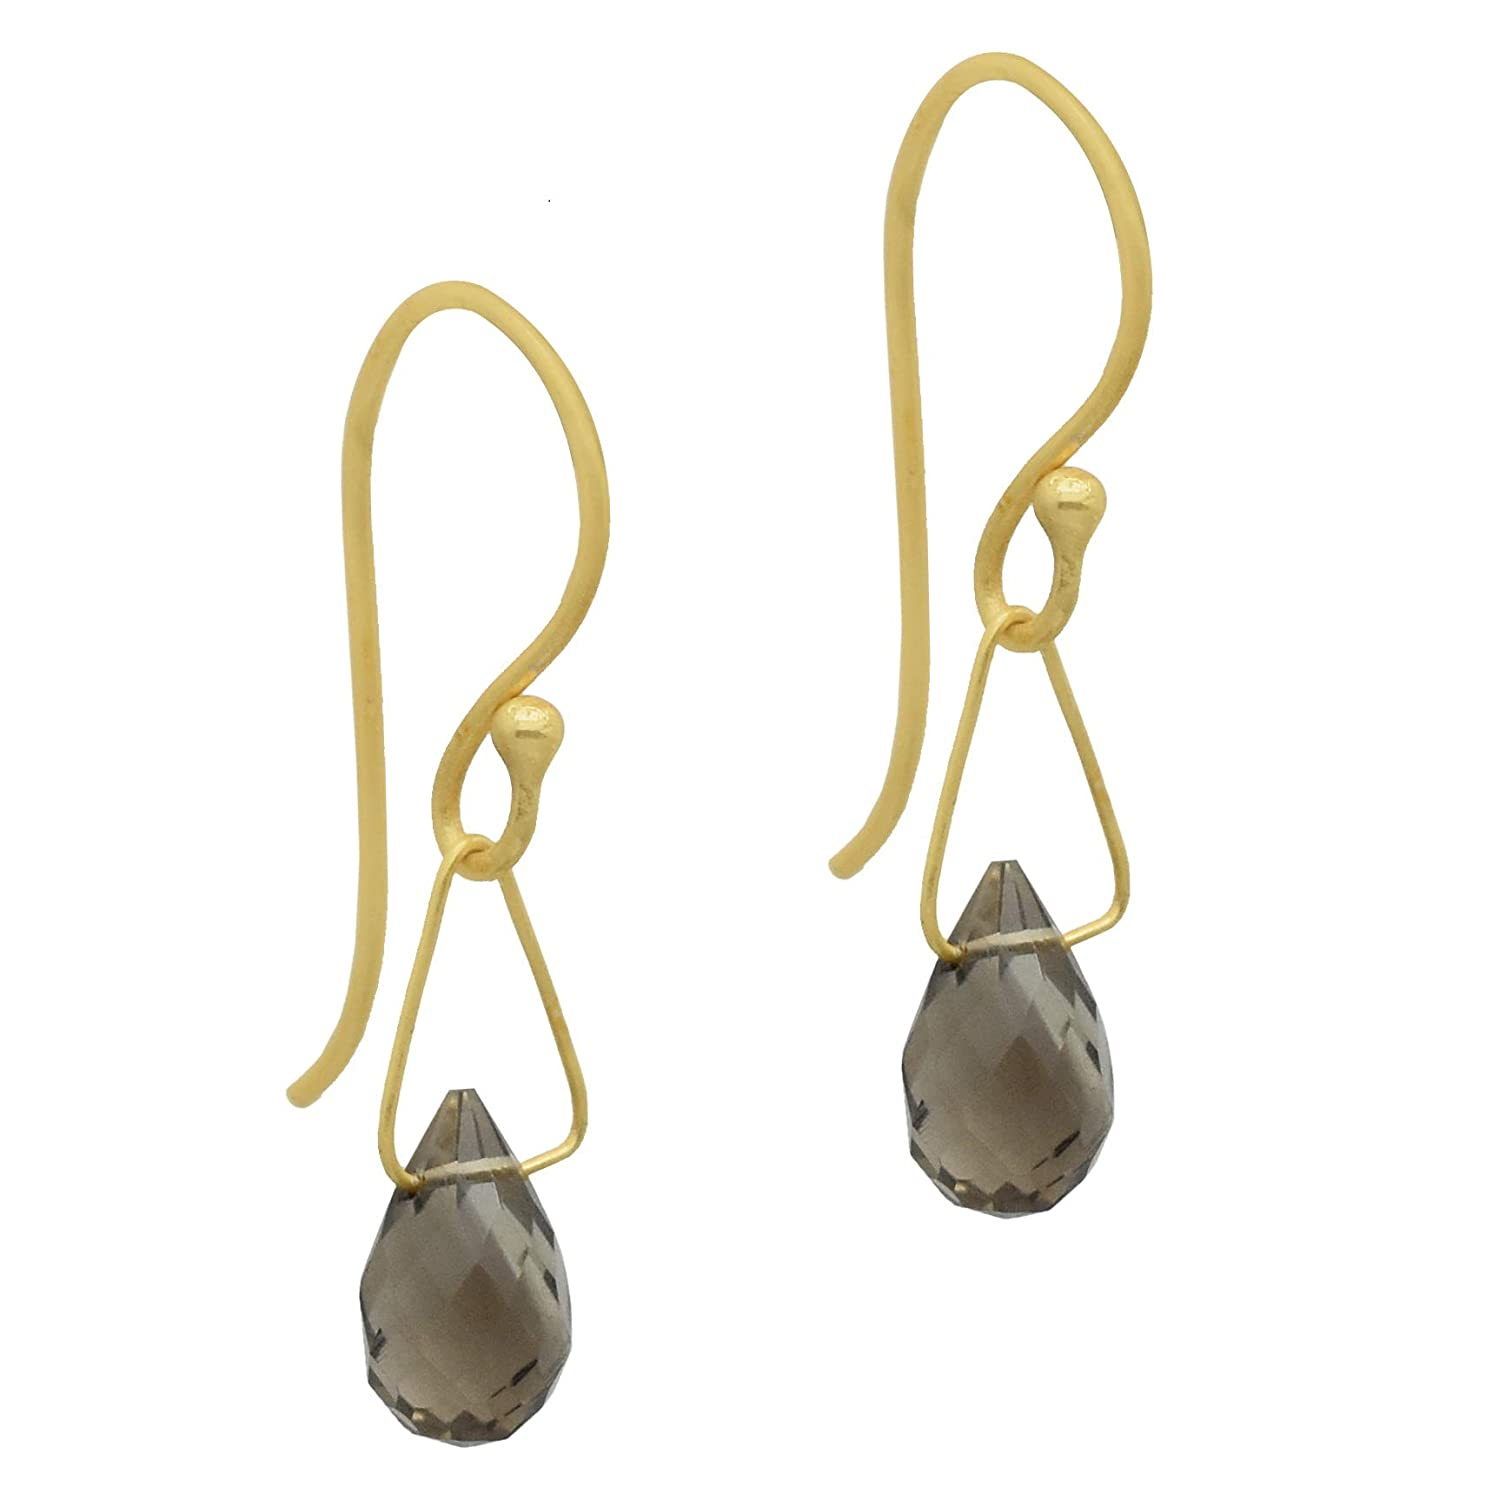 The V Collection earrings 22k yellow gold plated faceted smoky drop dangling earrings for women and girls